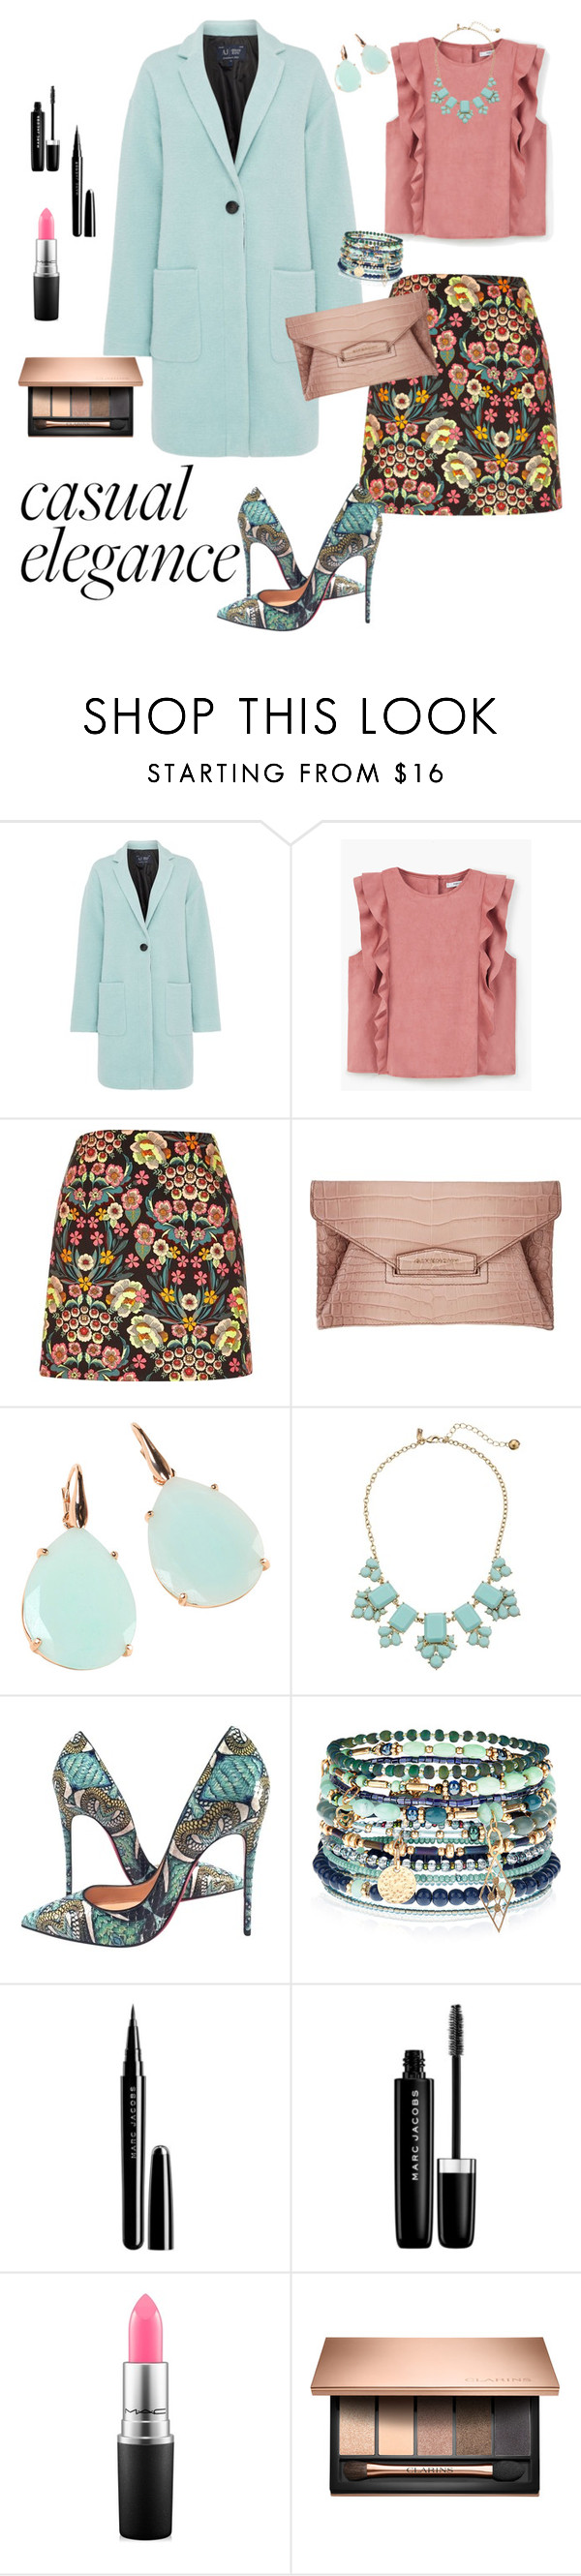 """""""Ruffles"""" by sara12alexandra ❤ liked on Polyvore featuring Armani Jeans, MANGO, Givenchy, Rina Limor, Kate Spade, Christian Louboutin, Accessorize, Marc Jacobs, MAC Cosmetics and GREEN"""